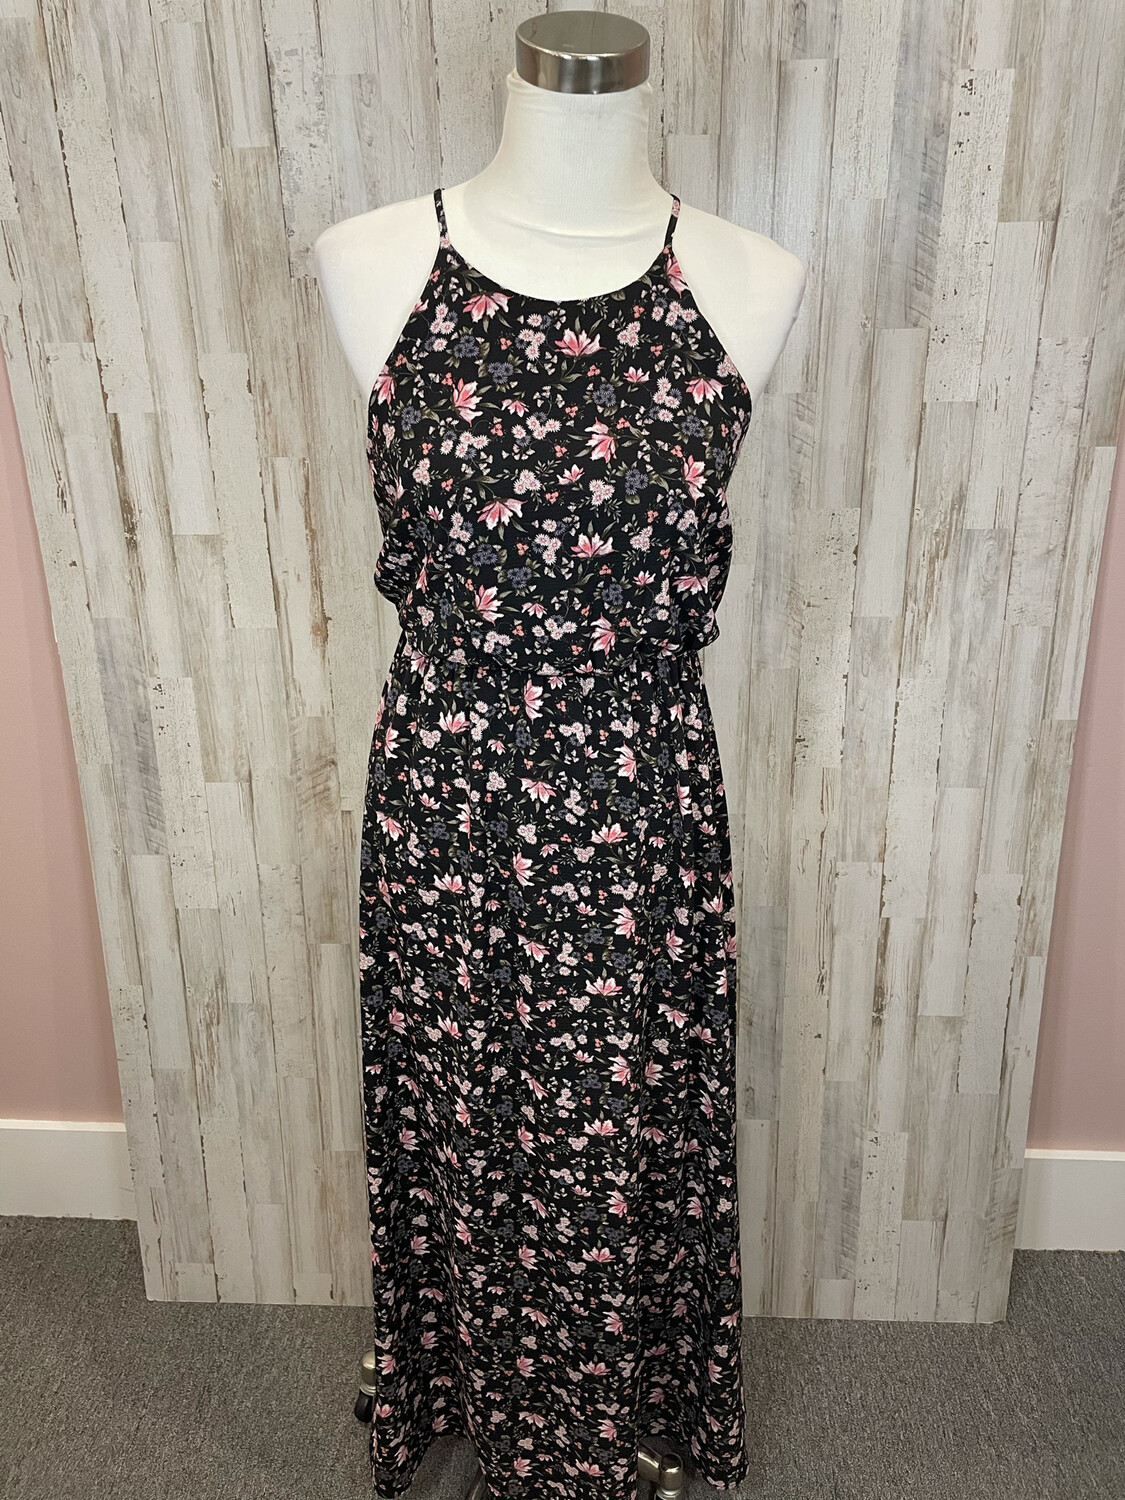 Everly Black & Pink Floral Maxi Dress - S